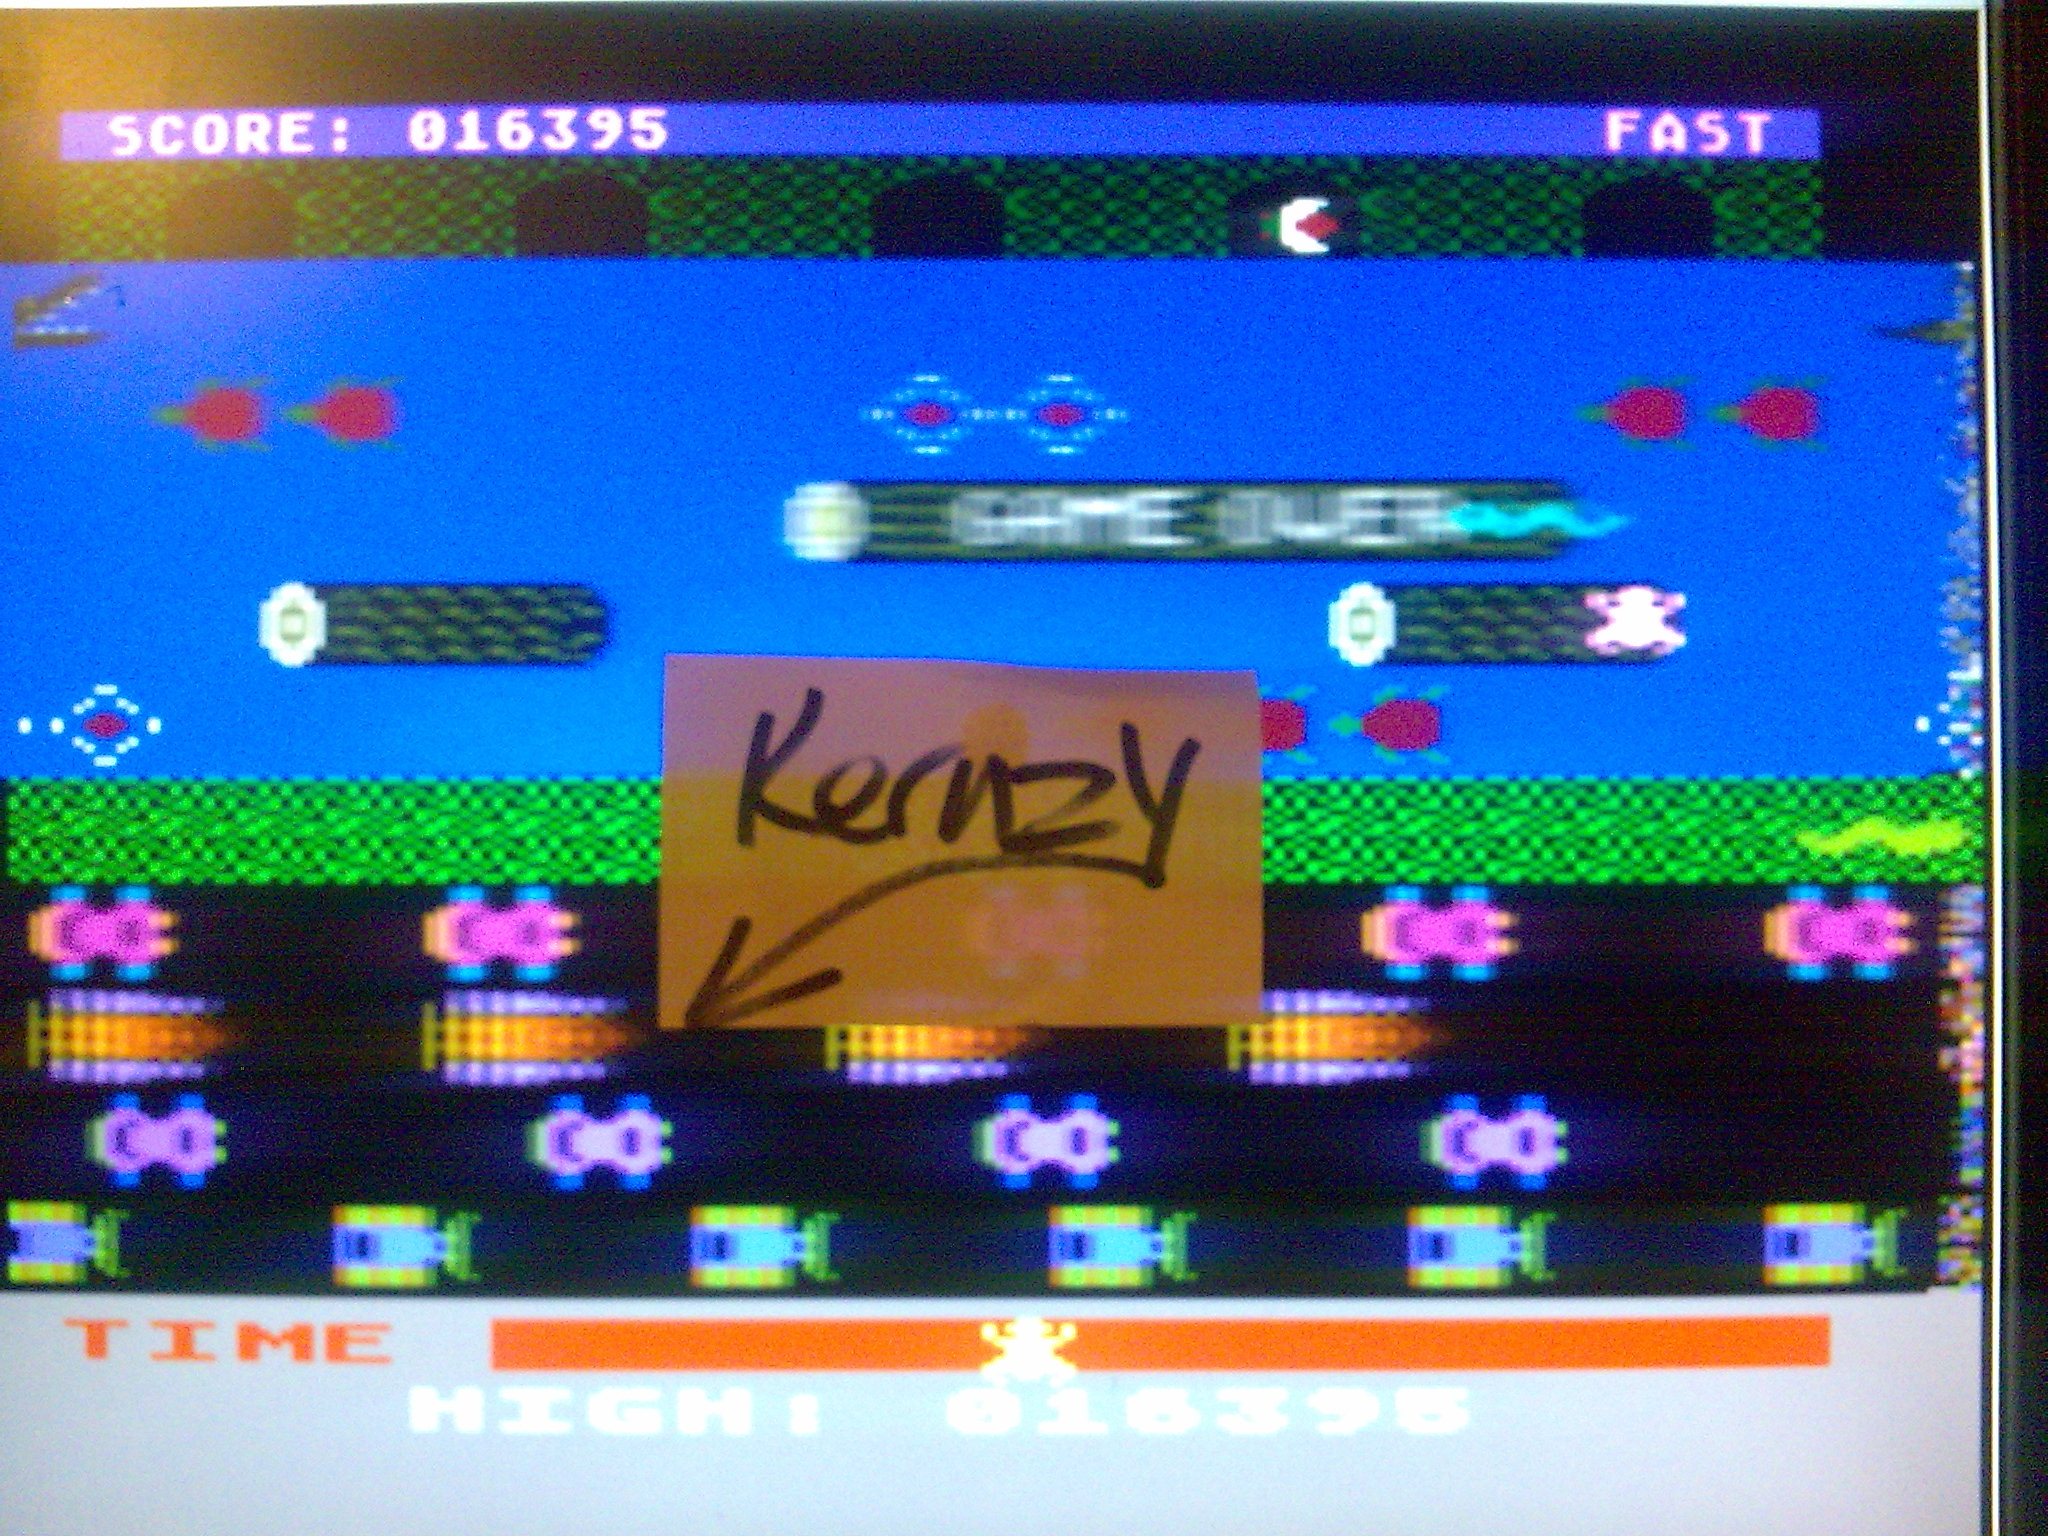 kernzy: Frogger: Fast [Sierra Online/John Harris] (Atari 400/800/XL/XE Emulated) 16,395 points on 2014-10-17 20:59:33